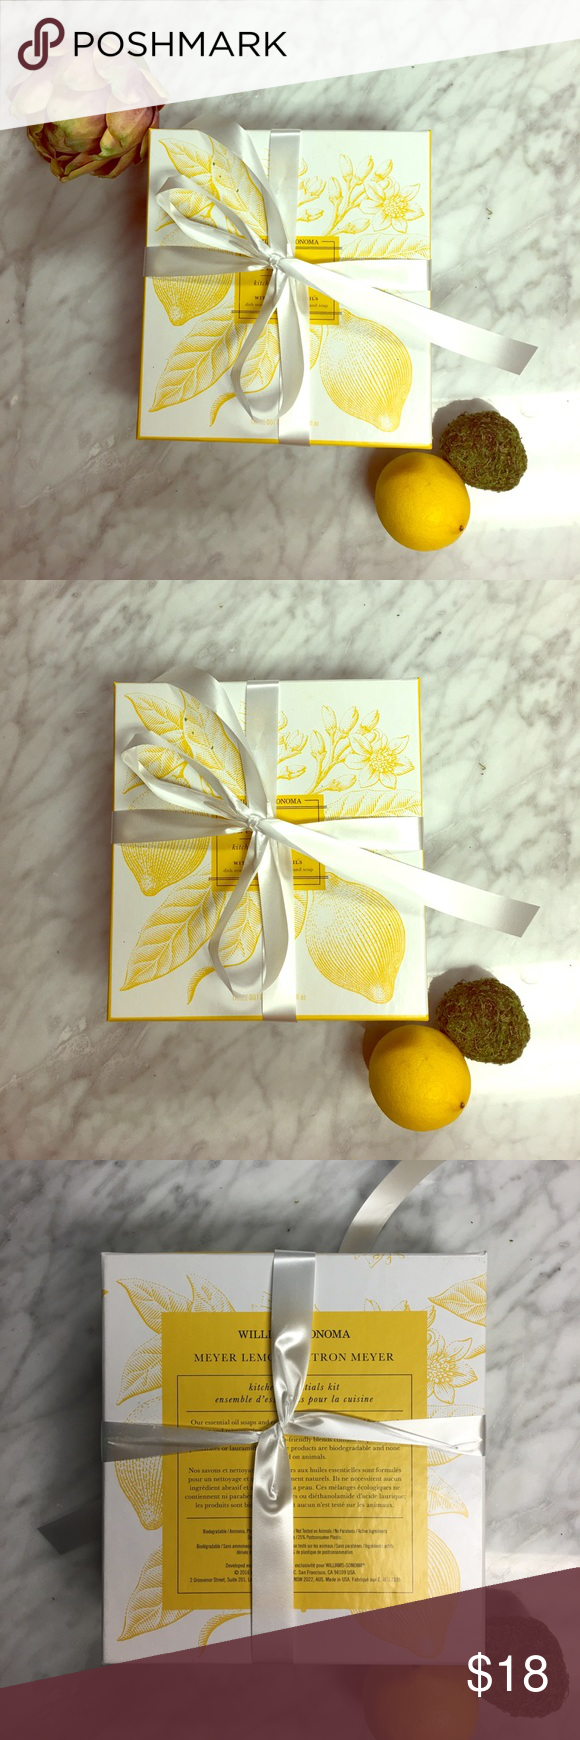 Williams Sonoma Kitchen Essentials Gift Set This Meyer Lemon